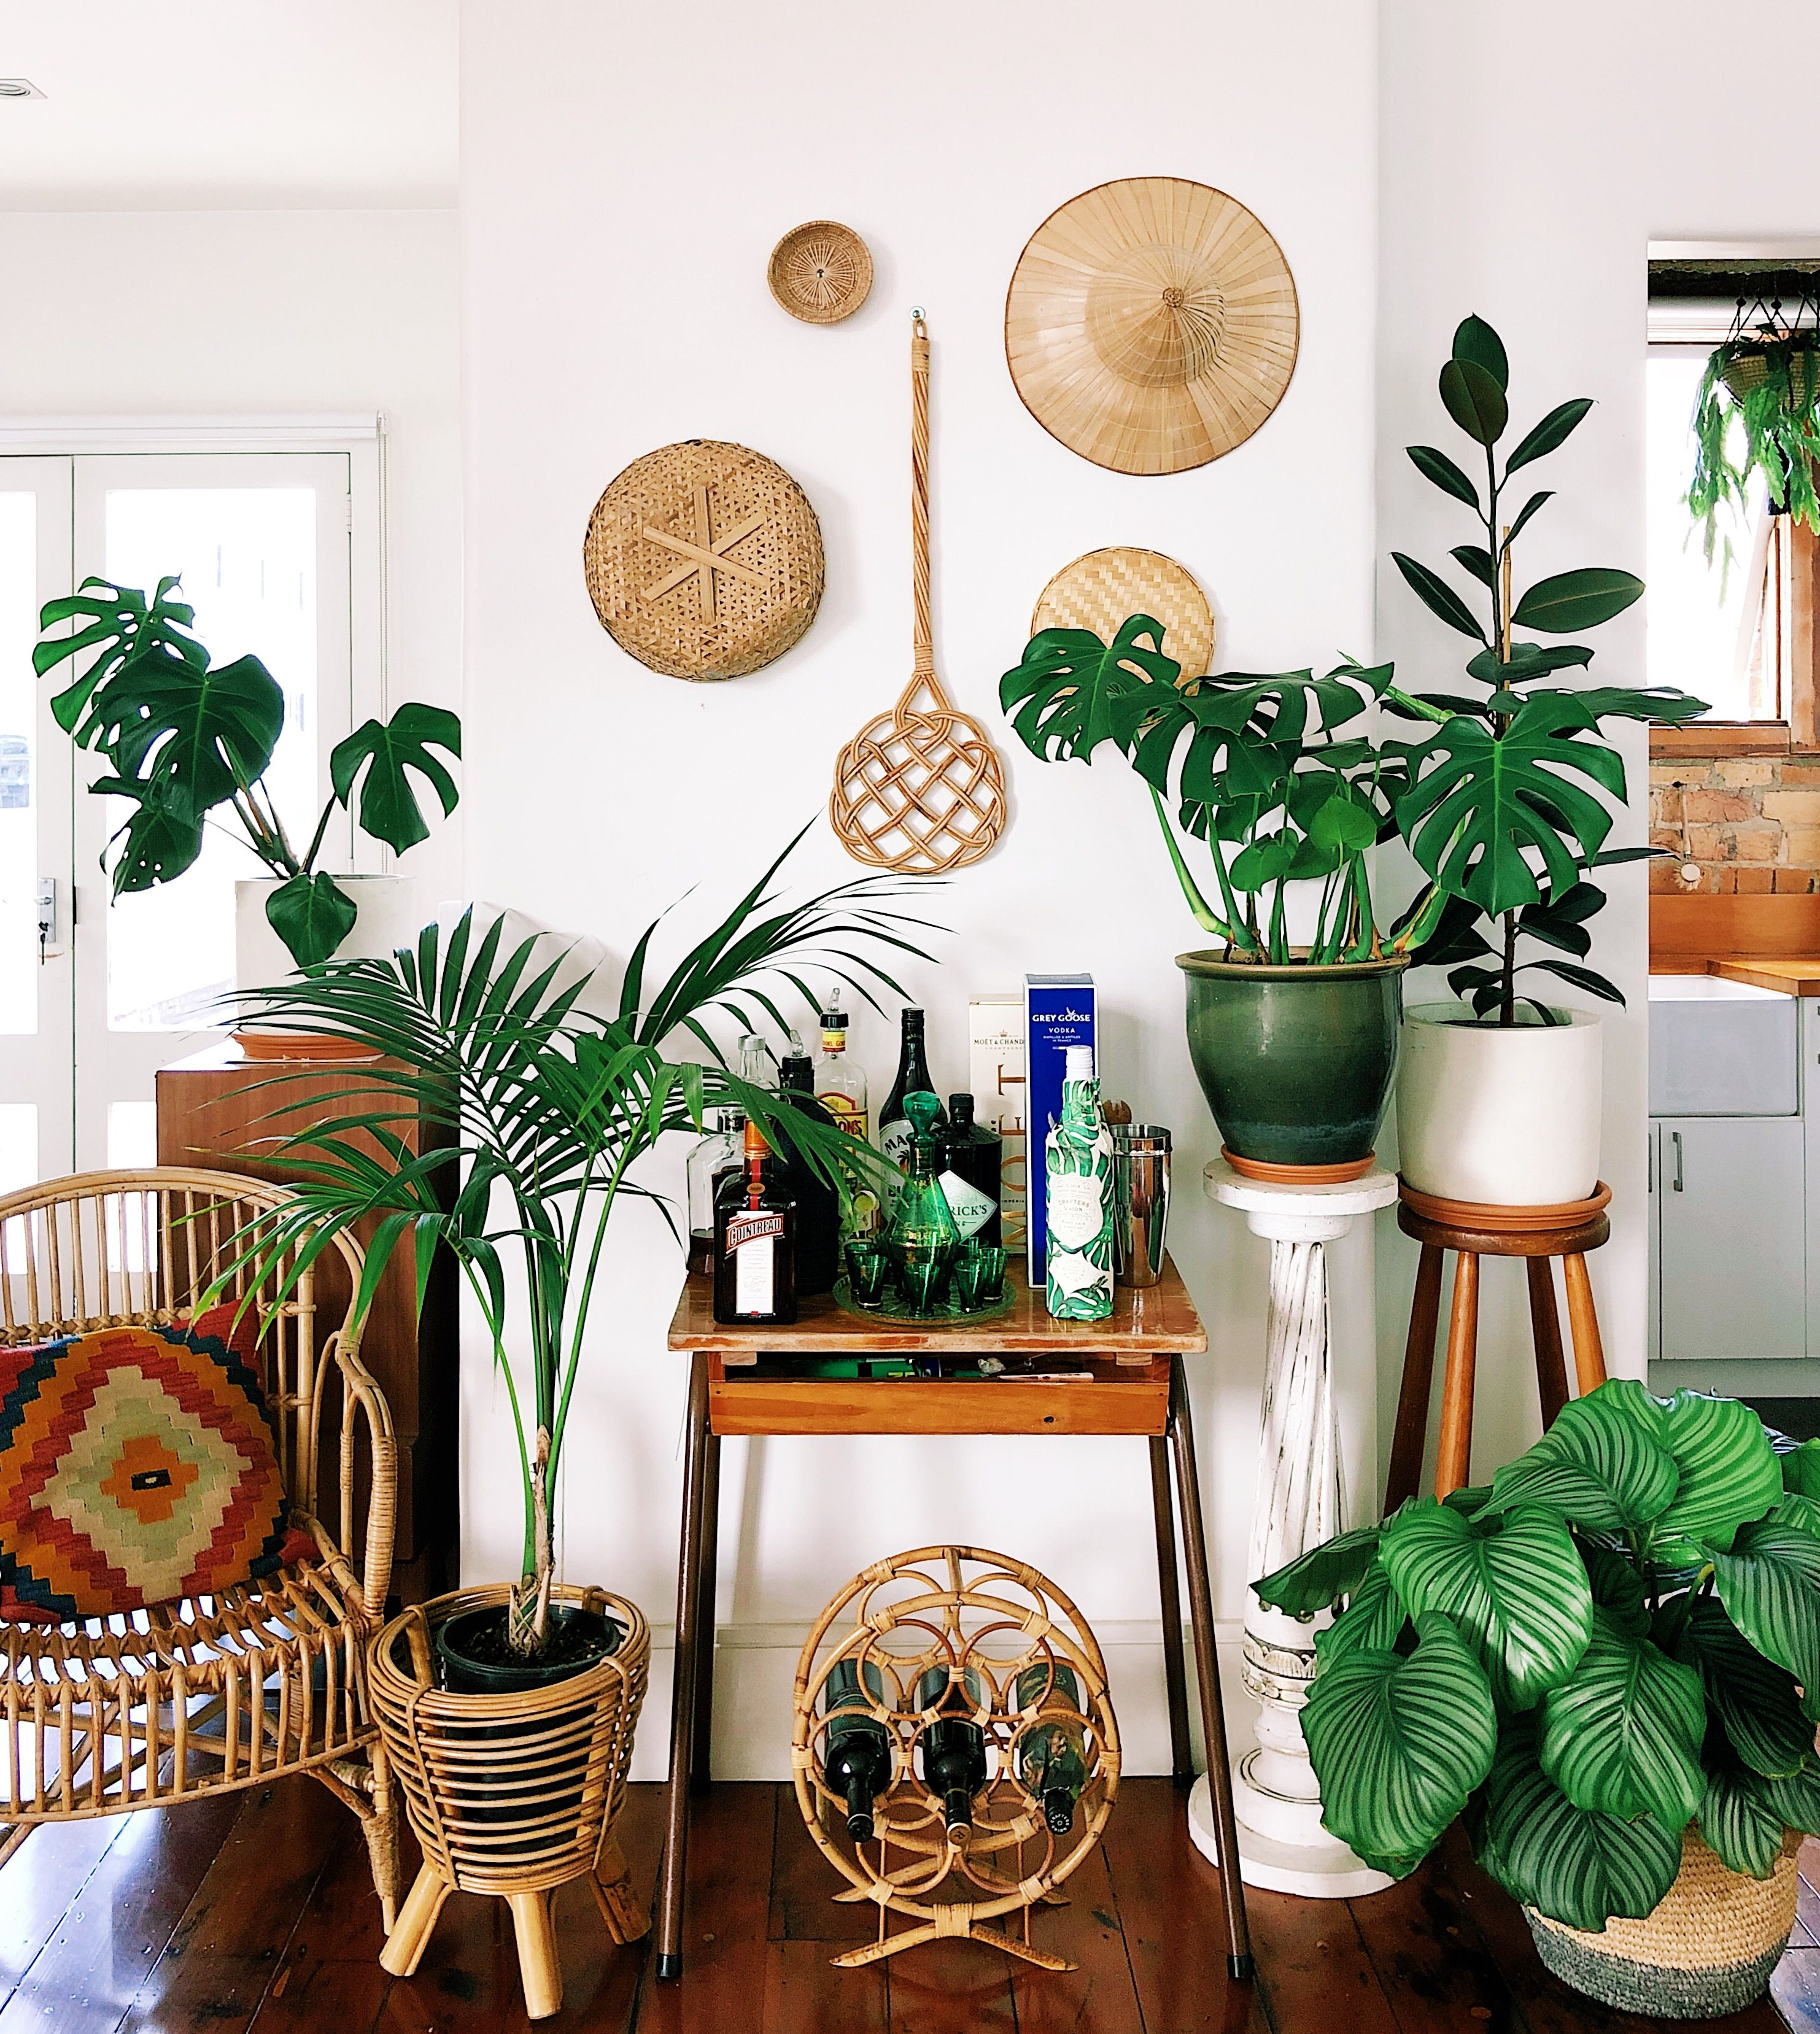 Big Plants For Living Room This New Zealand Home In A 1920s Converted Factory Is A